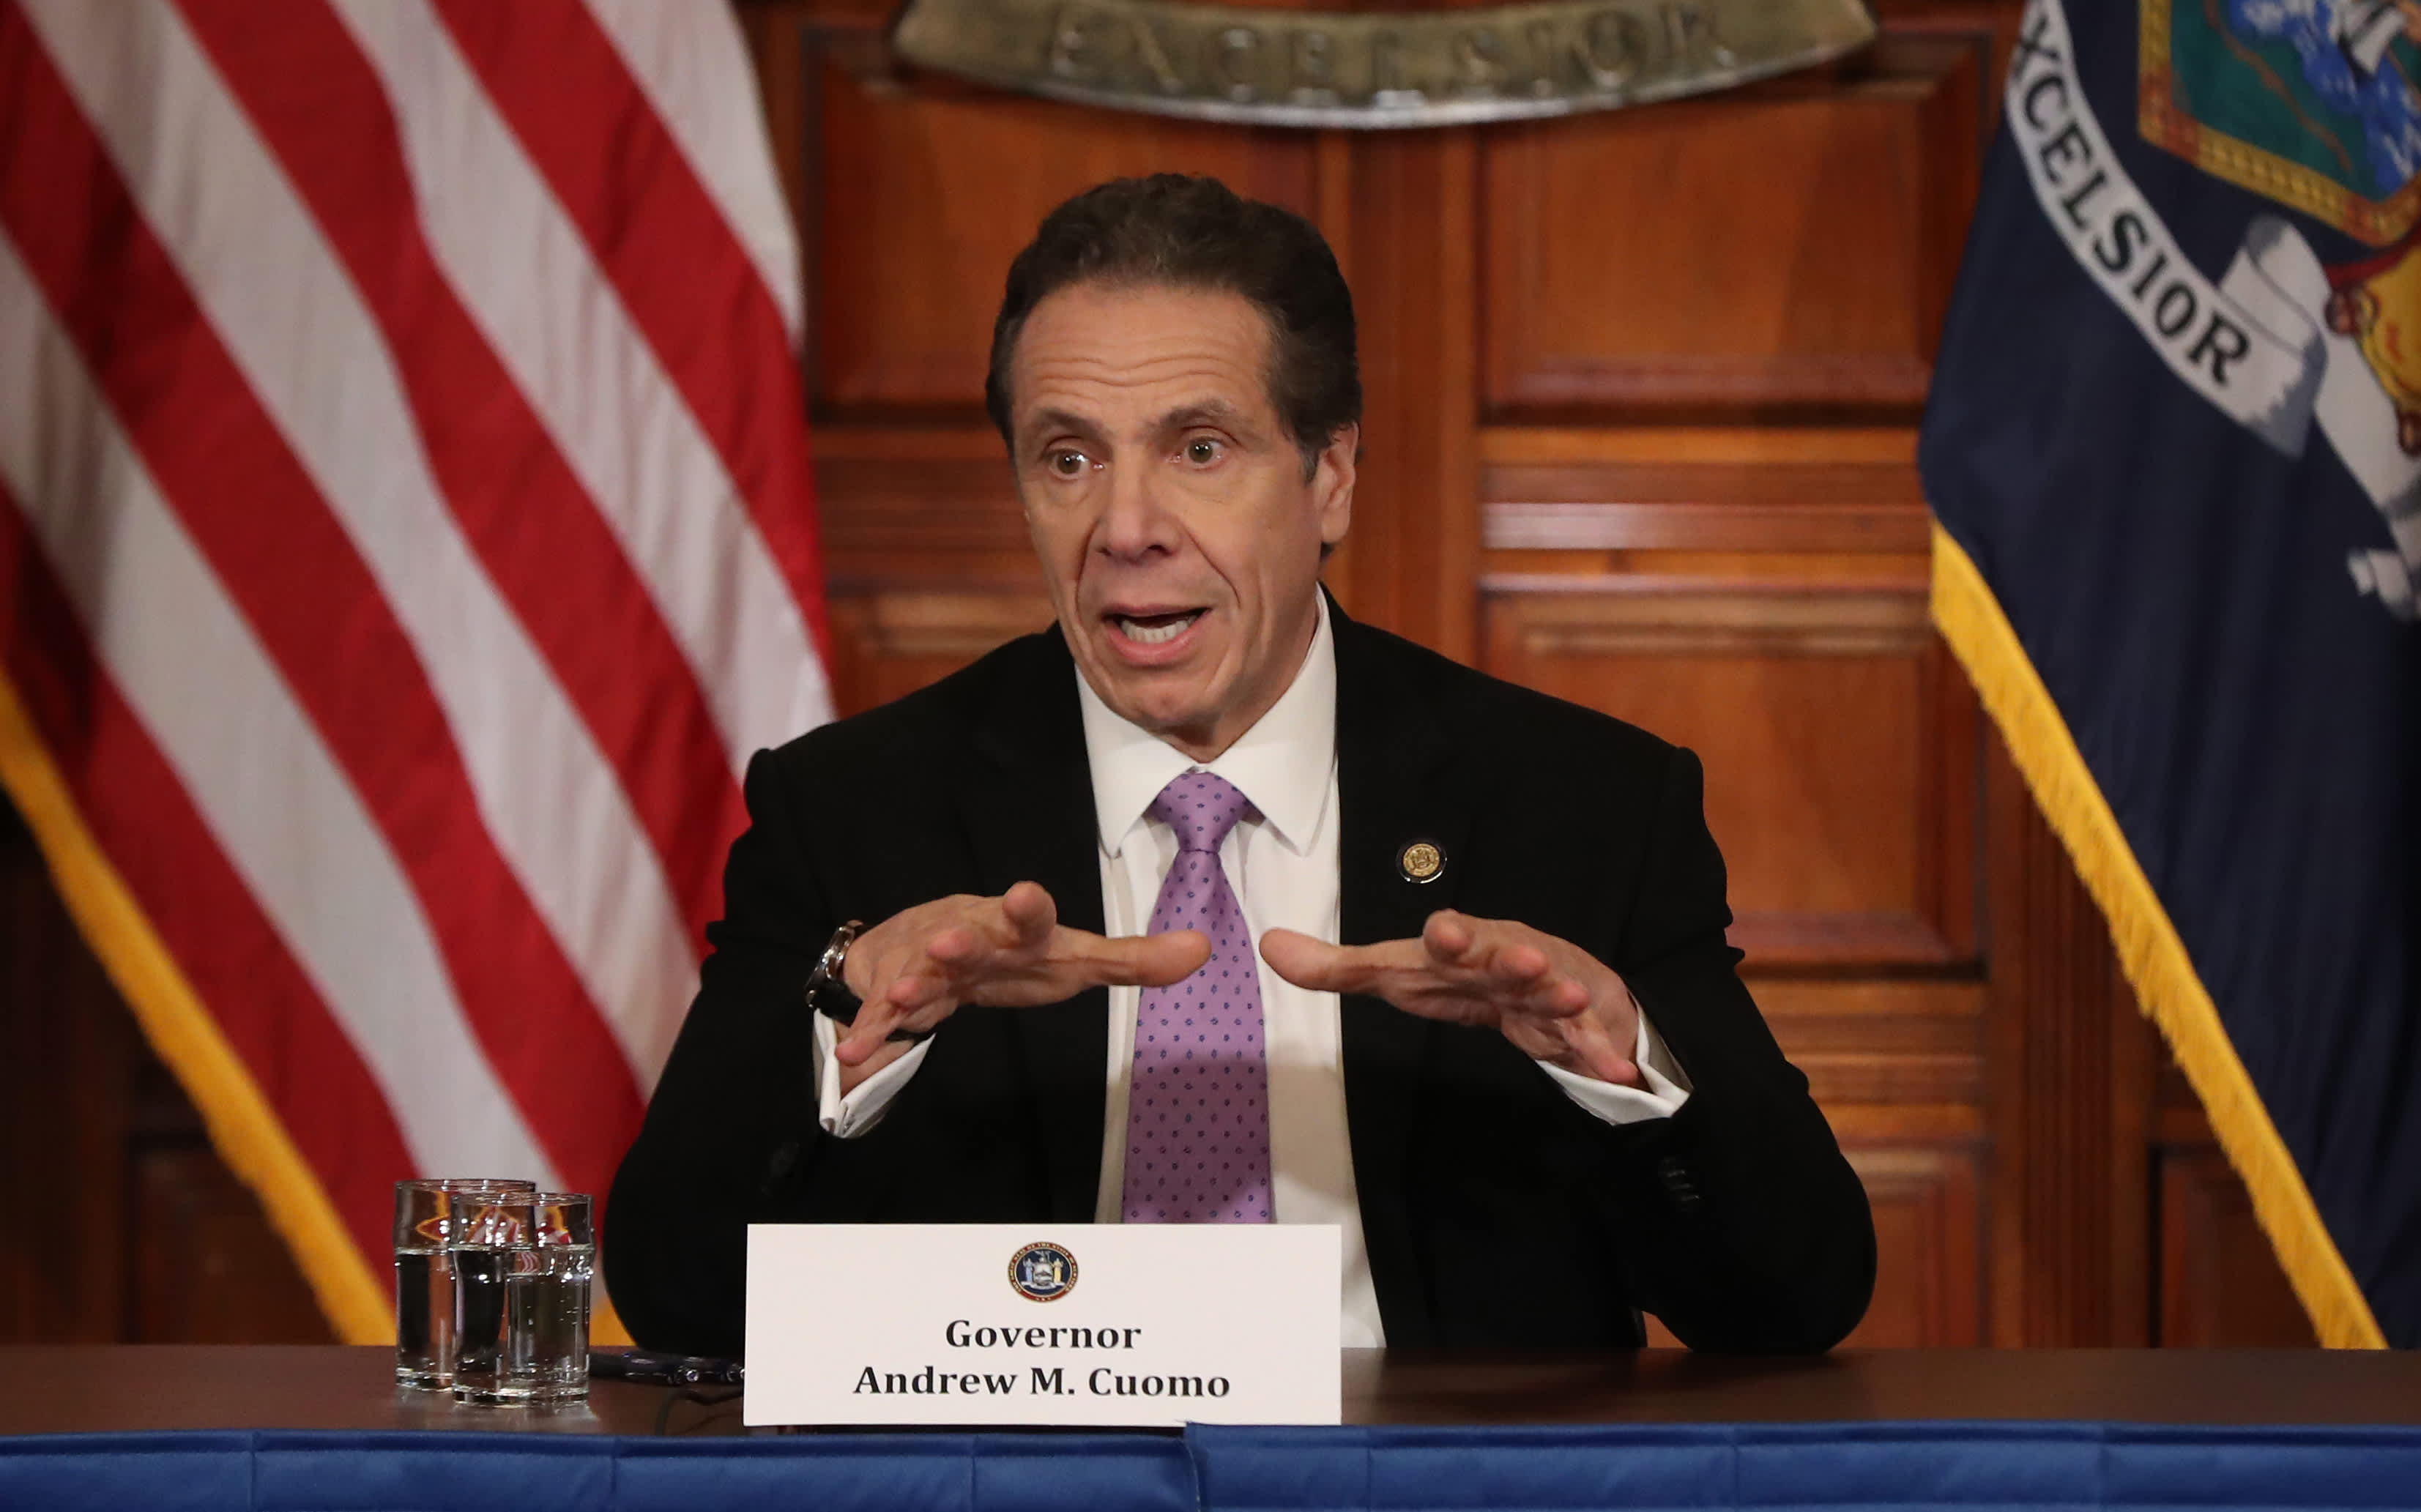 Cuomo calls $2 trillion bill irresponsible and reckless